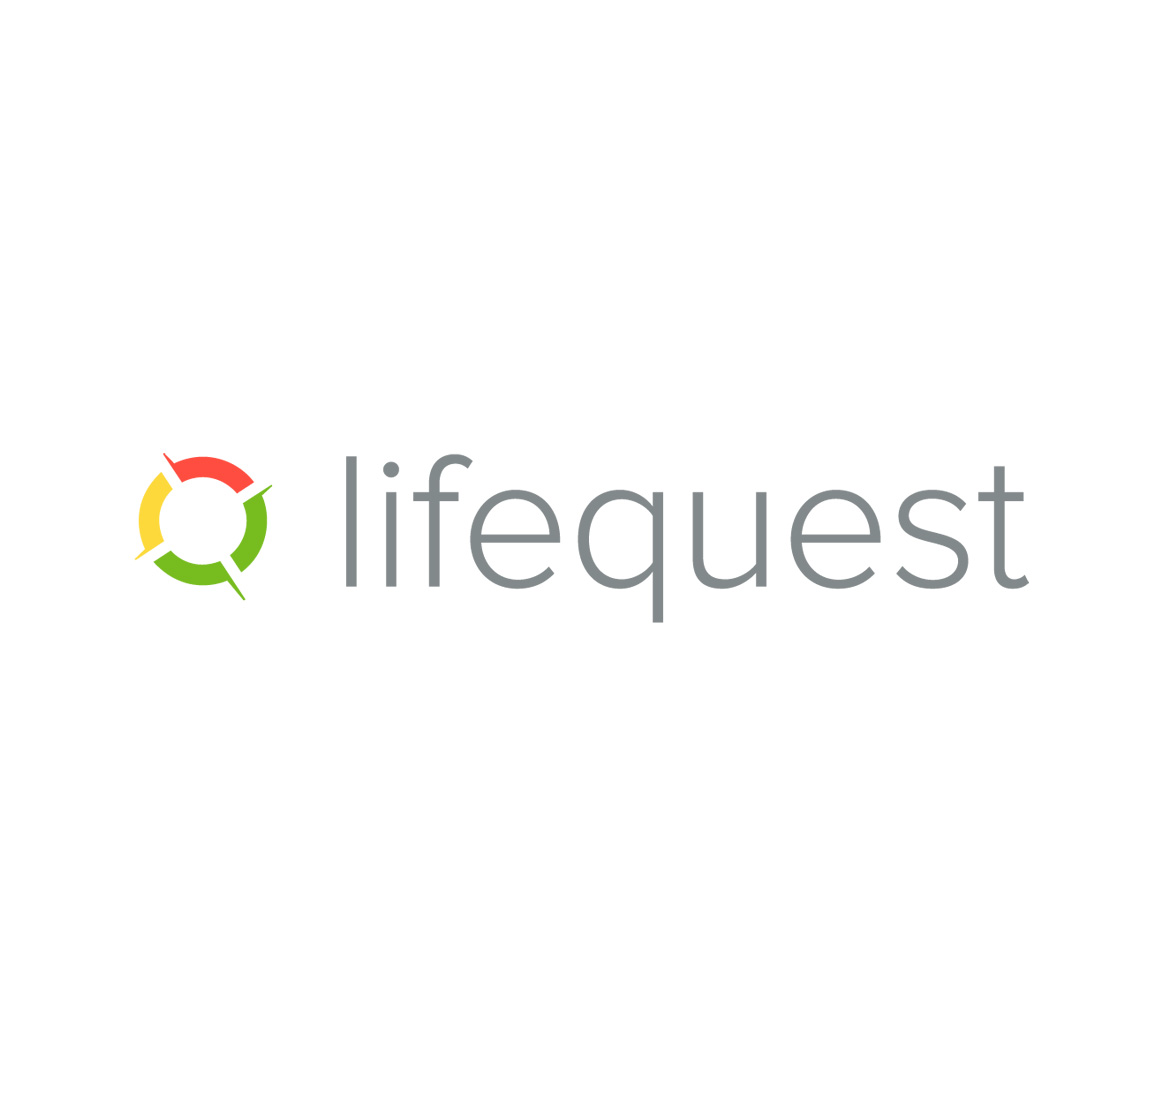 lifequest logo.JPG